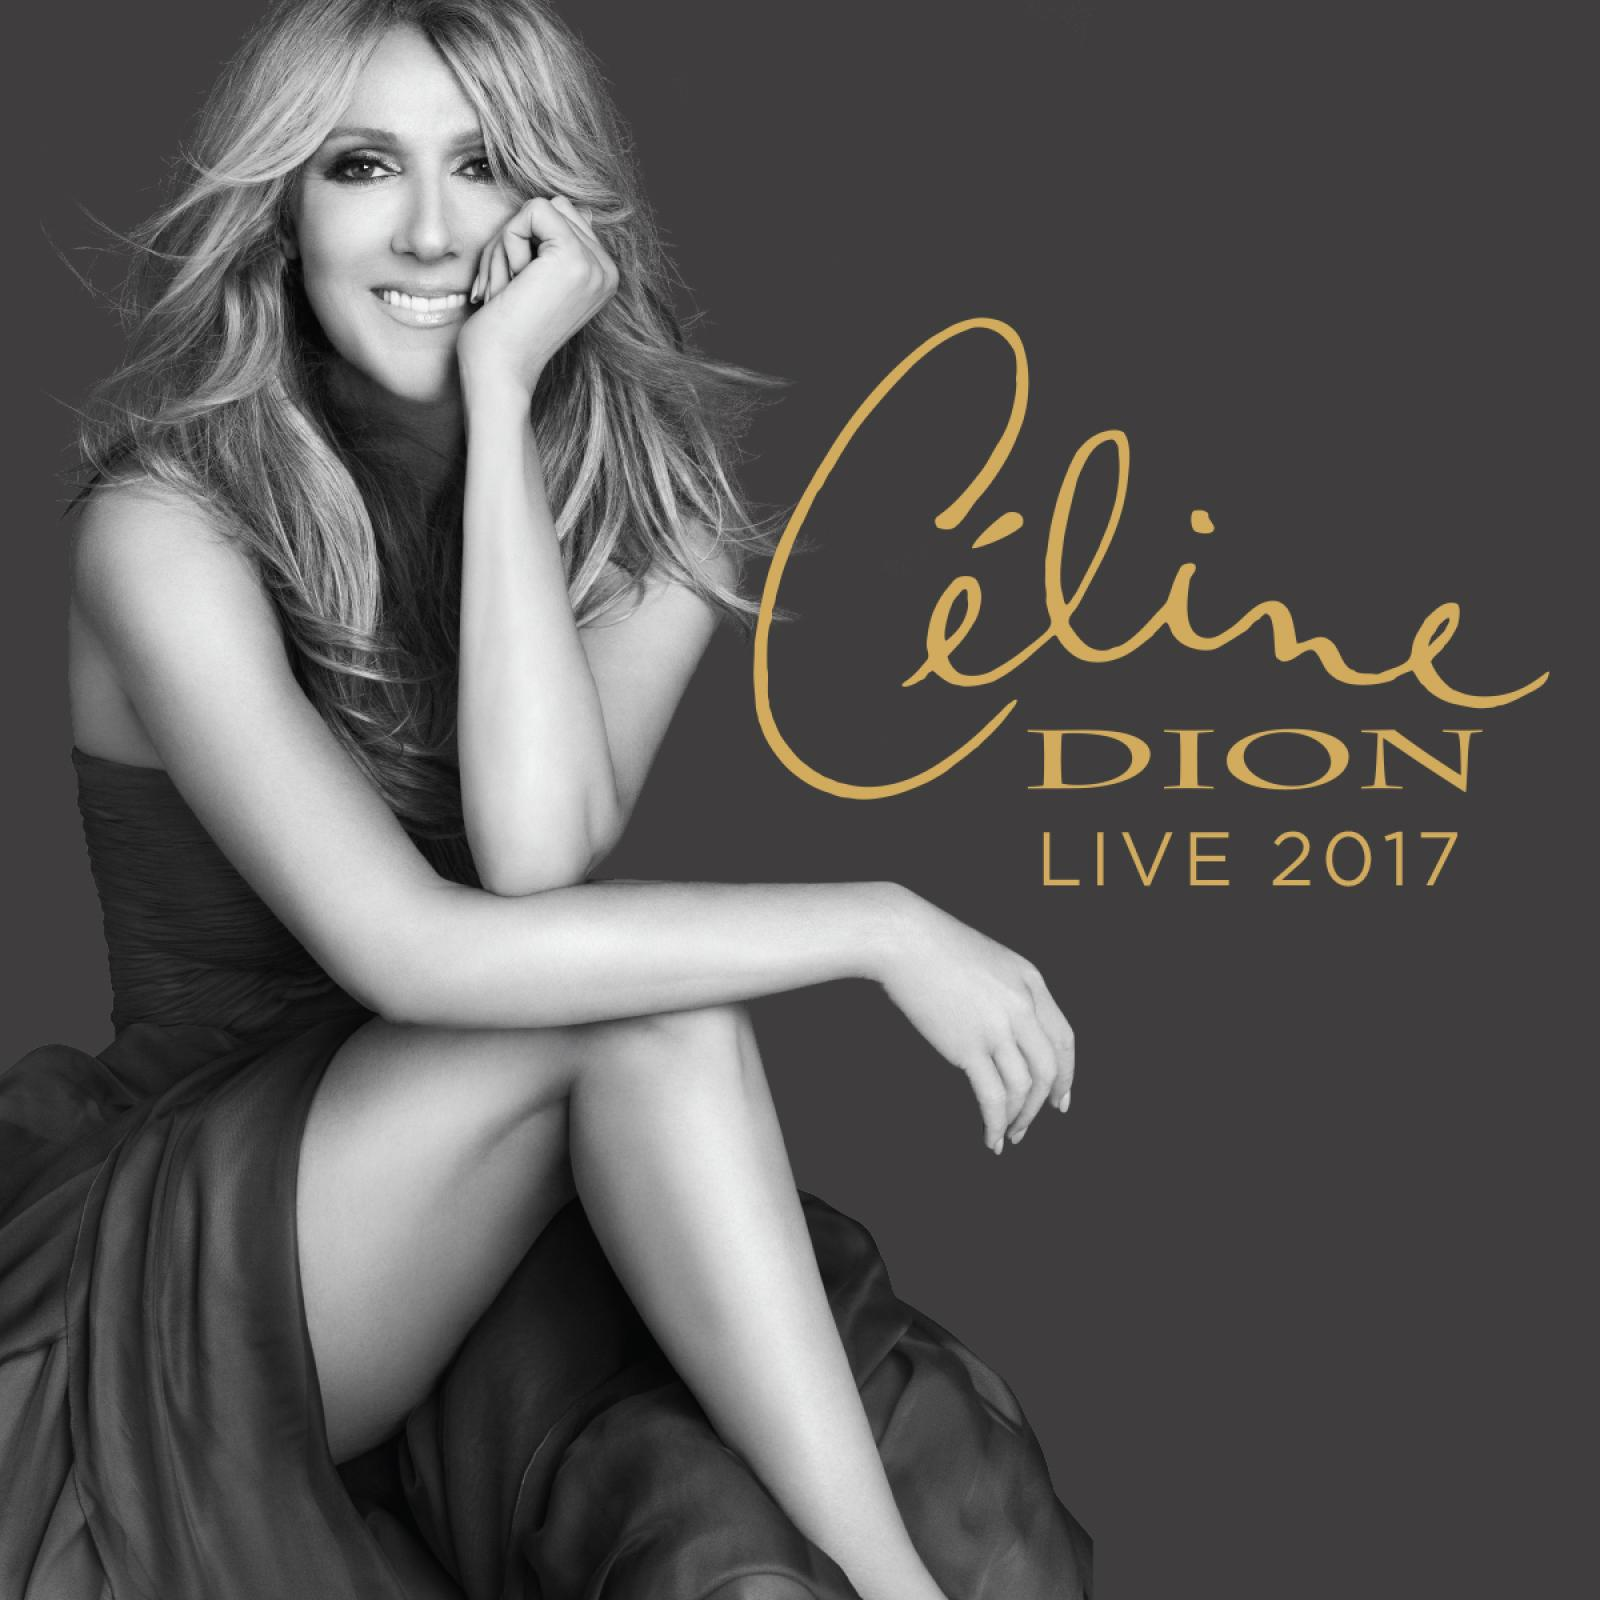 Celine Dion Tour French Song Promo